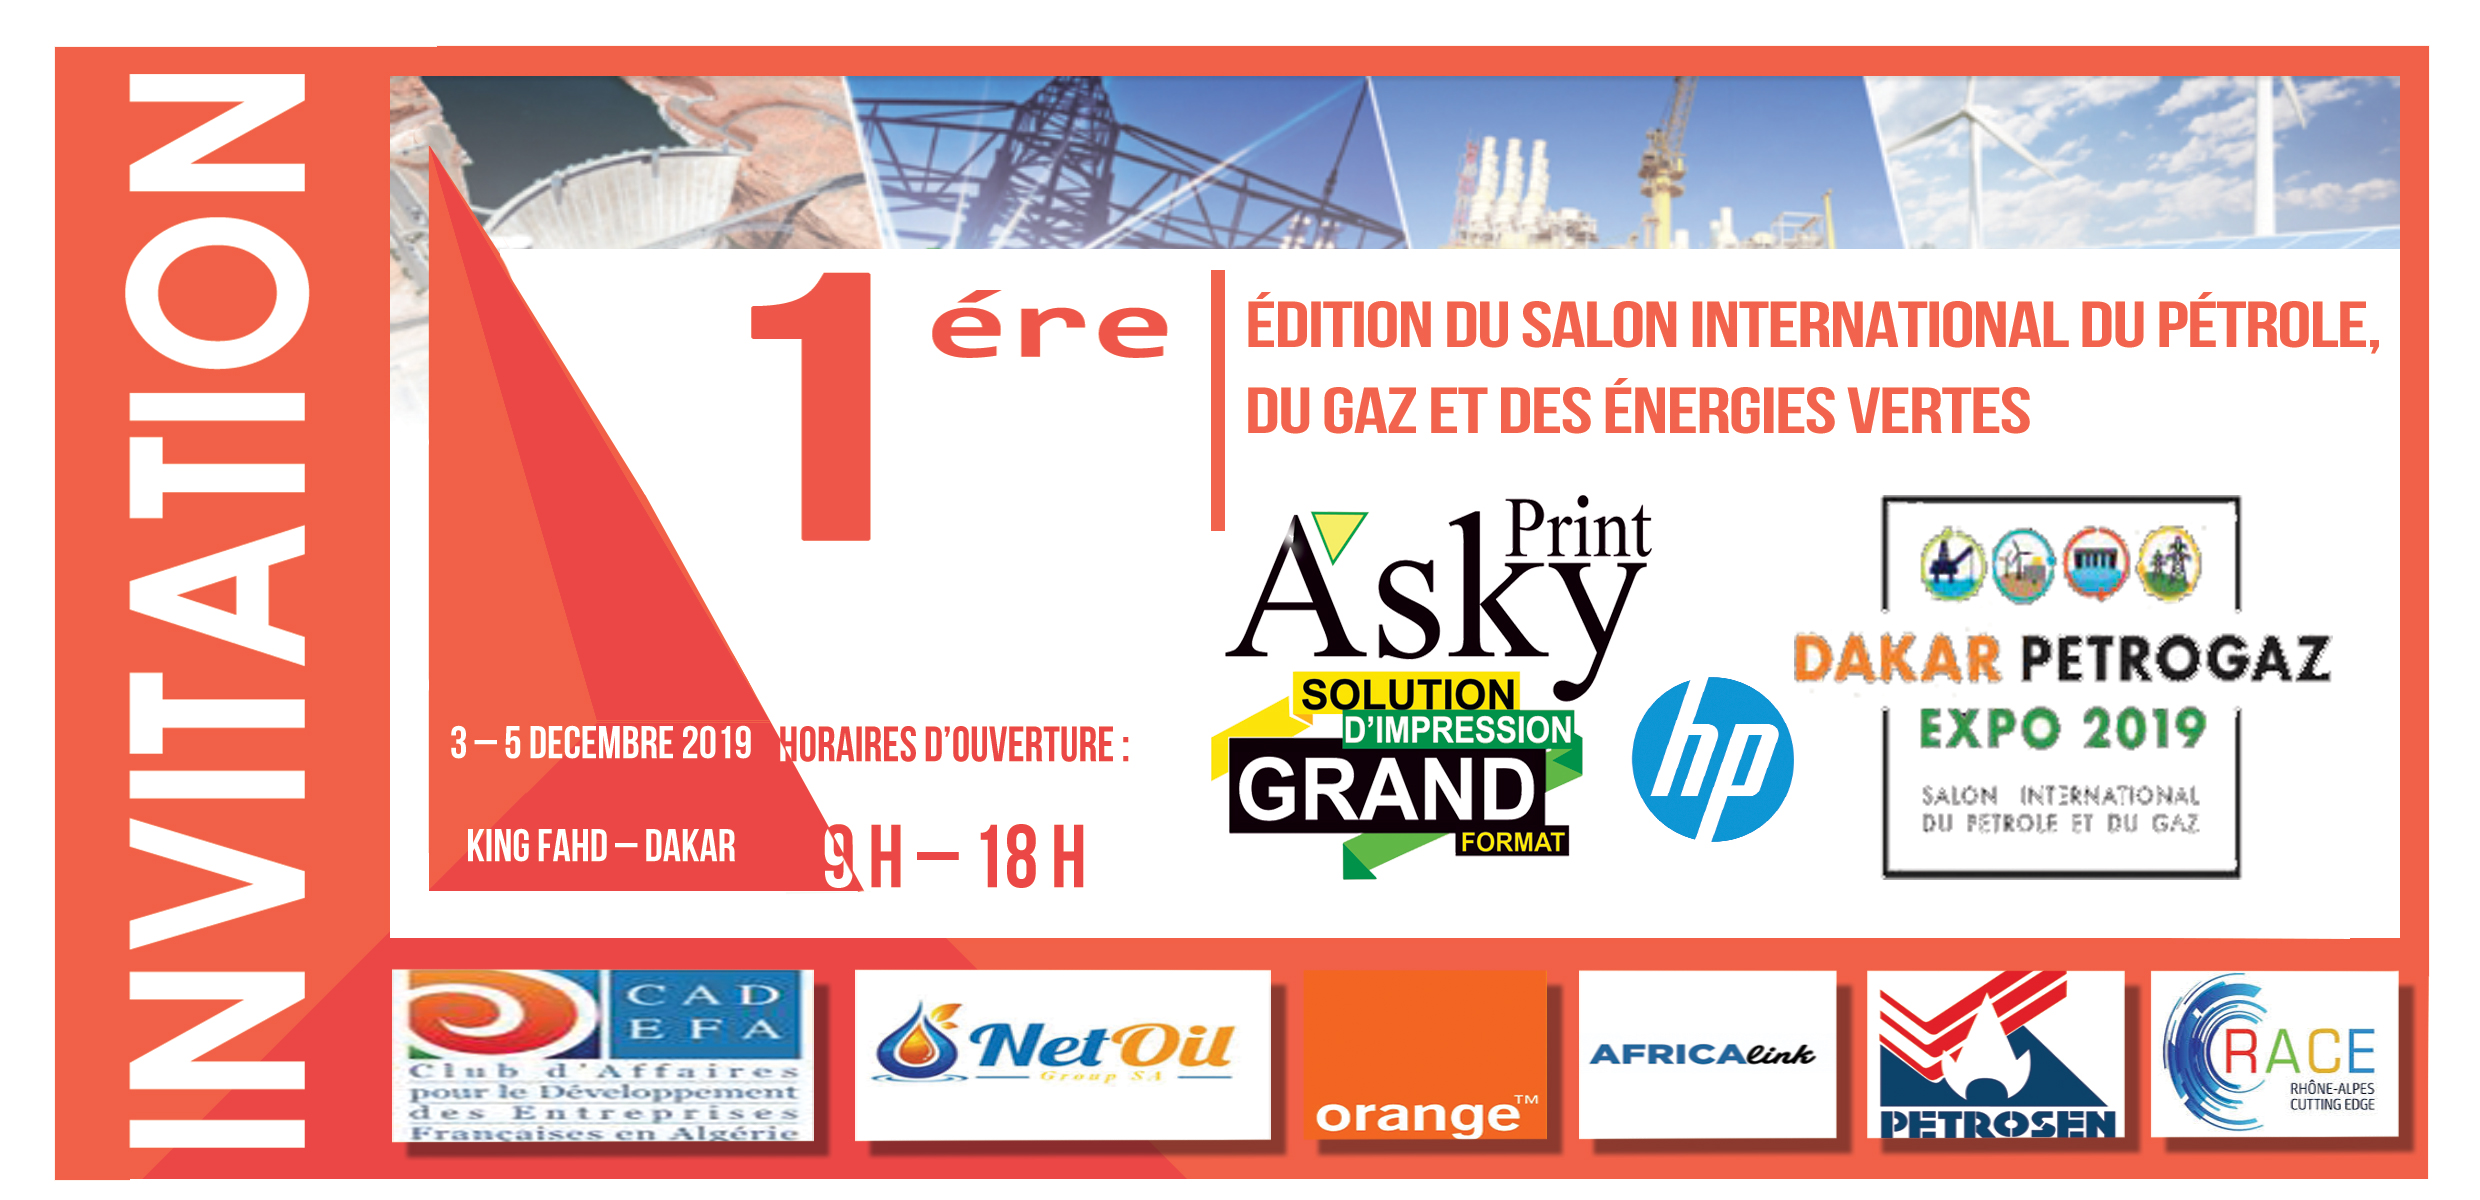 Salon international du pétrole, du gaz et des énergies vertes, DAKAR PETROGAZ 2019